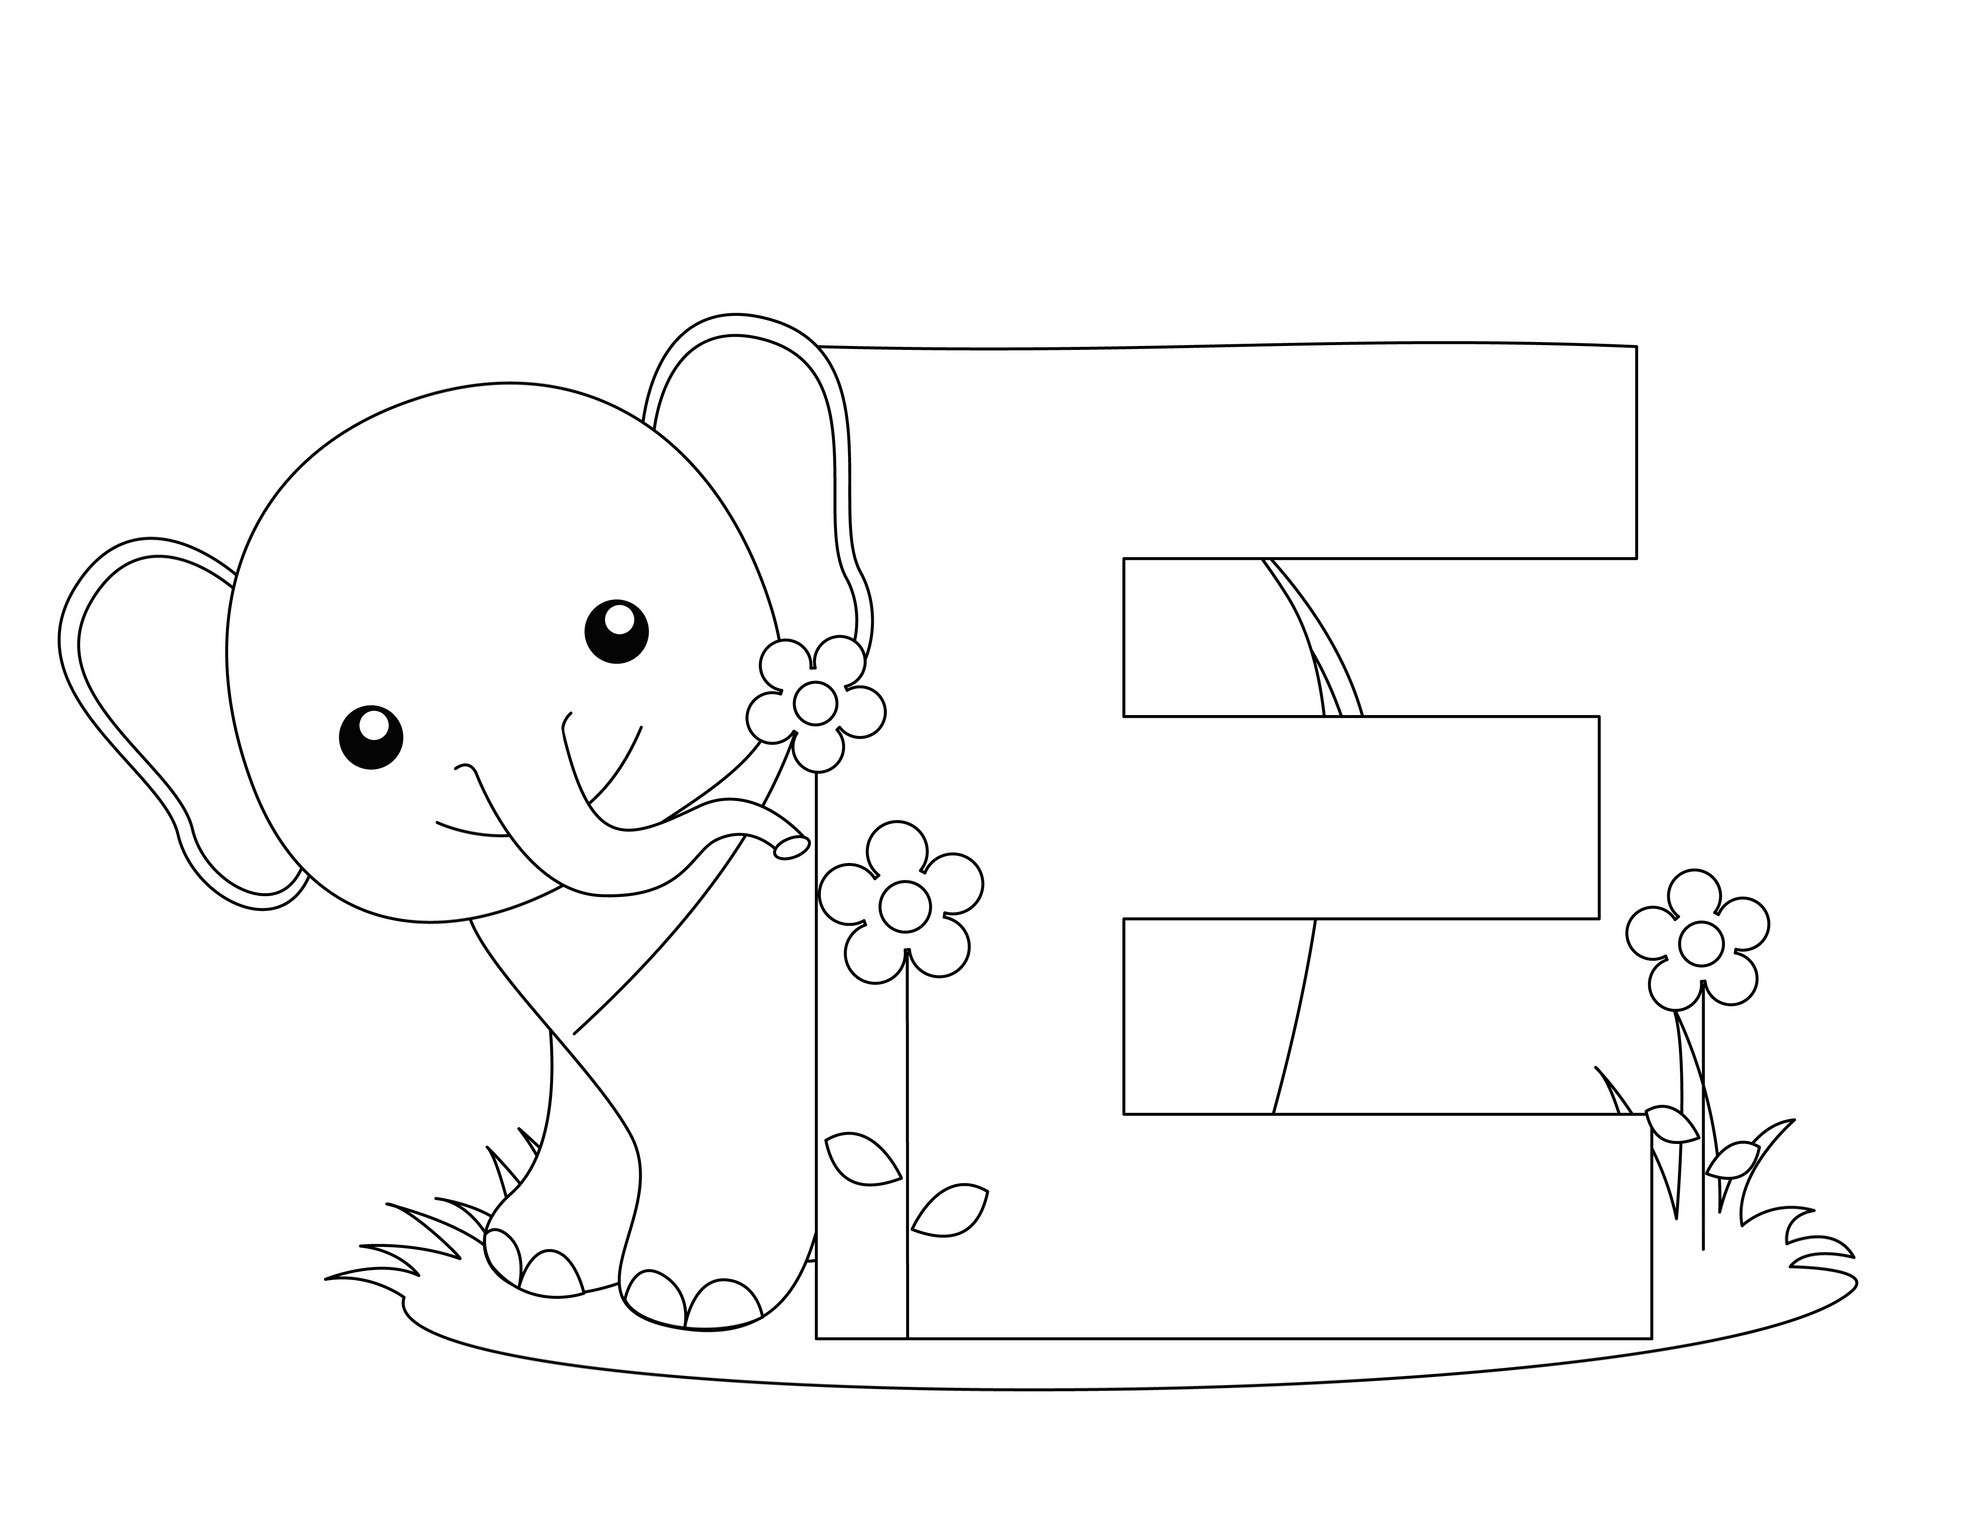 alphabet coloring pages letter e - Coloring Pages Of Alphabet